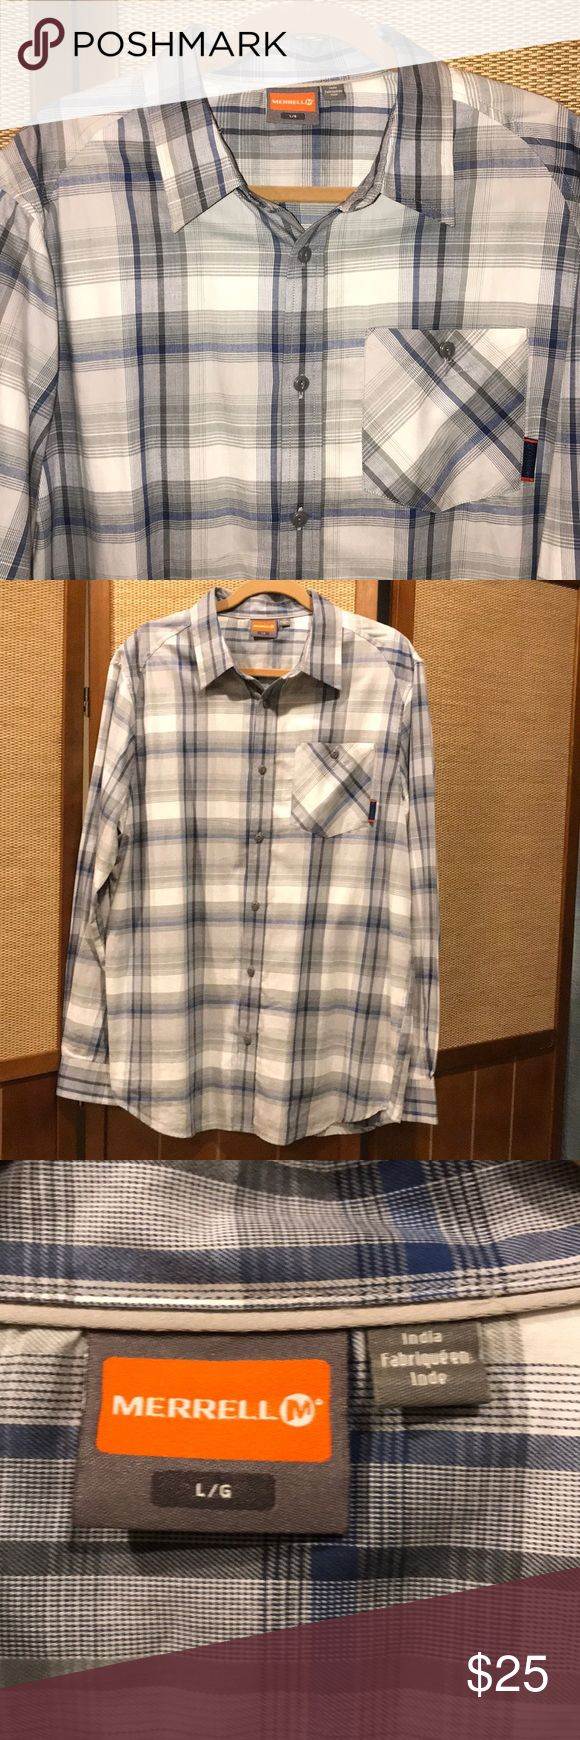 Merrell Men's Shirt Only worn a handful of times. Like new condition! Rich, royal blue plaid. Save 💵 and bundle! 👍🏼 Merrell Shirts Casual Button Down Shirts